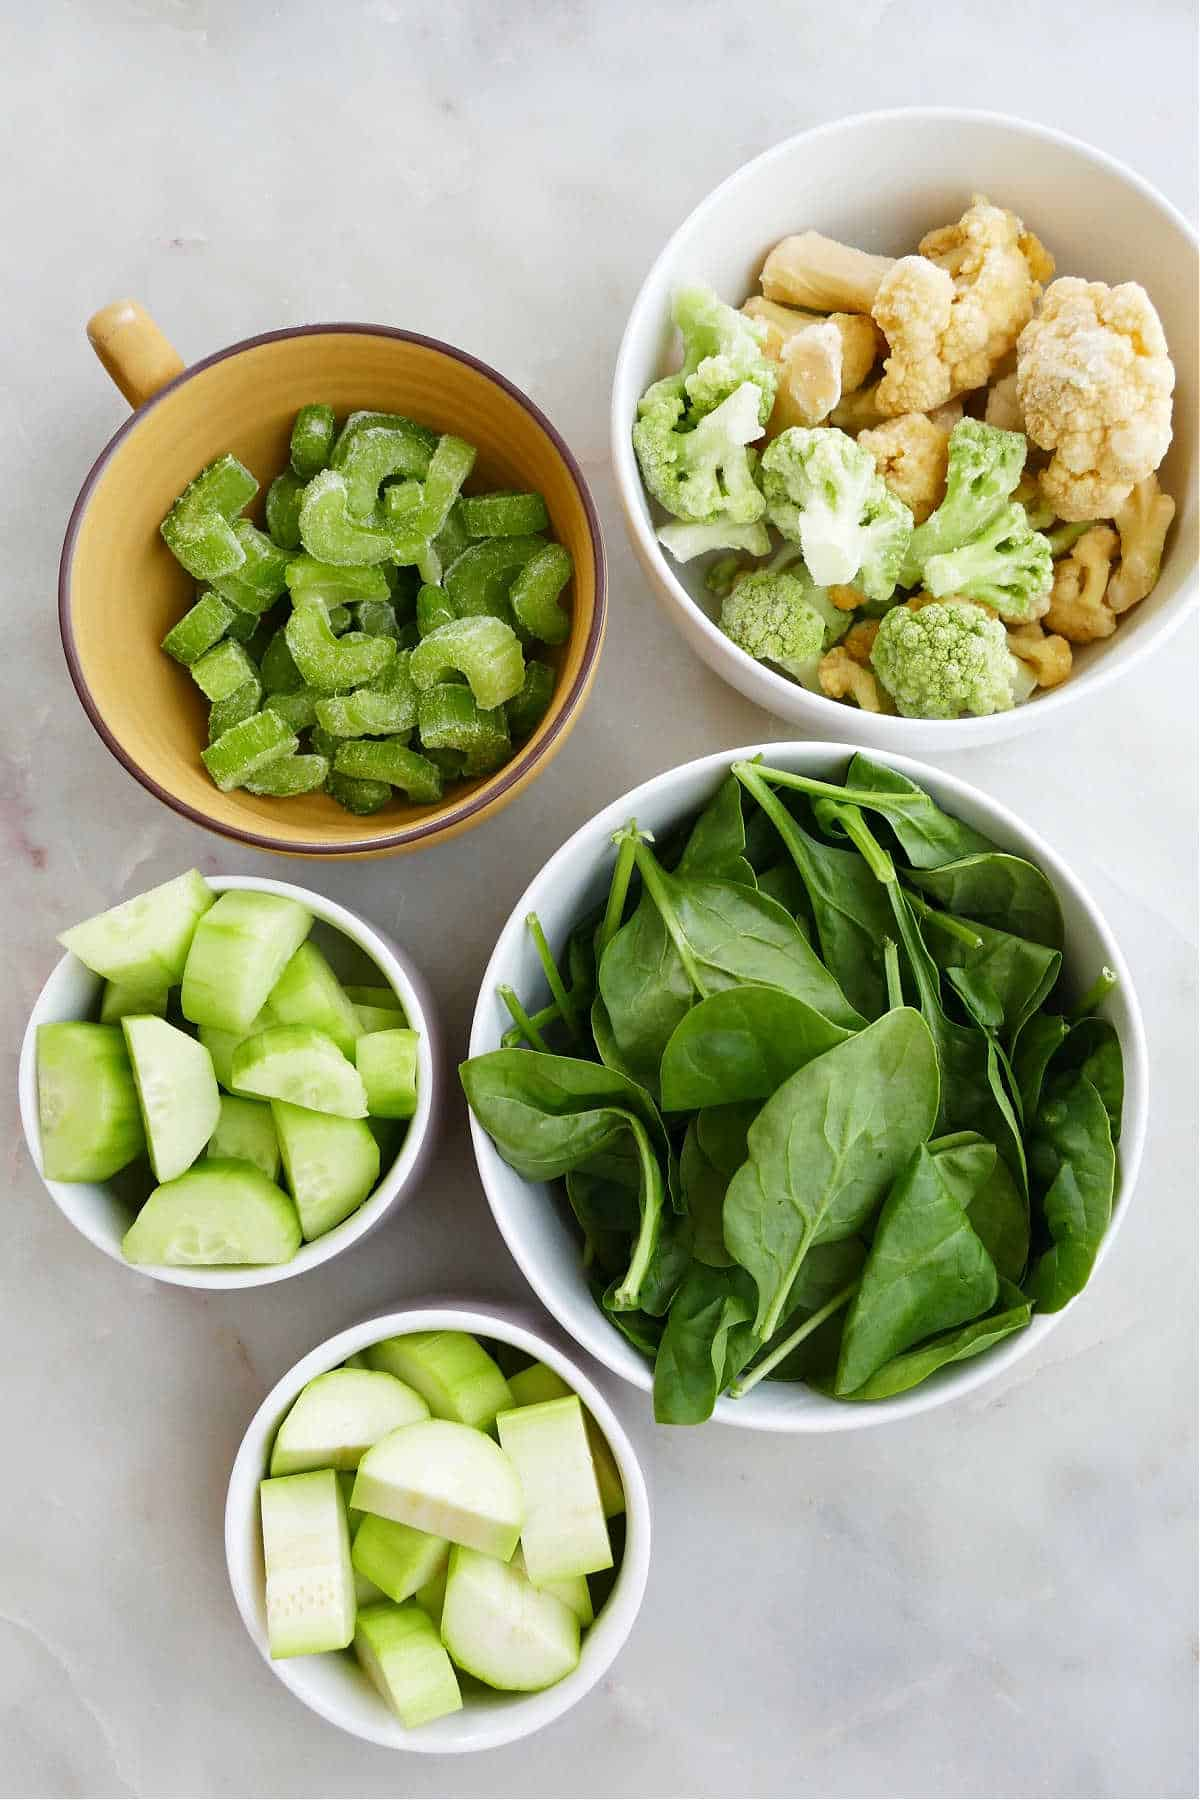 celery, cauliflower, spinach, cucumber, and zucchini in bowls spread out on a counter